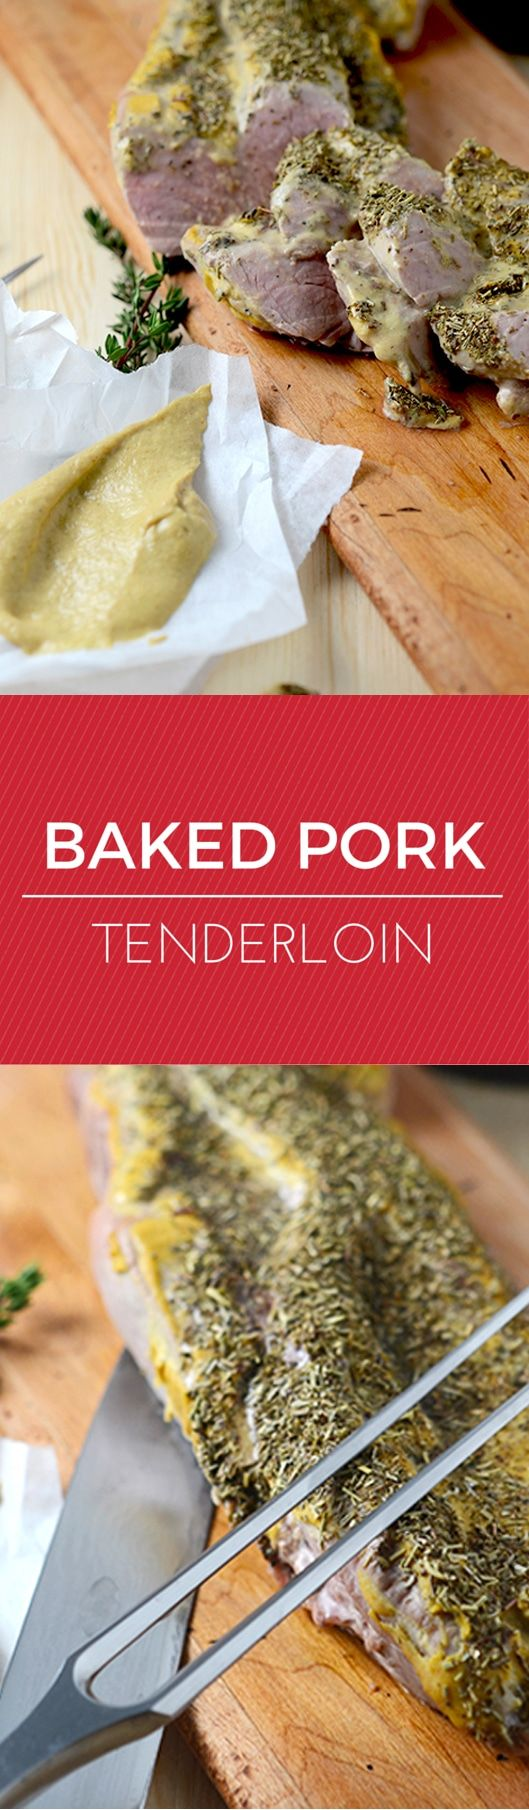 A perfectly easy baked pork tenderloin recipe with only 3 ingredients! Can't get easier than this!